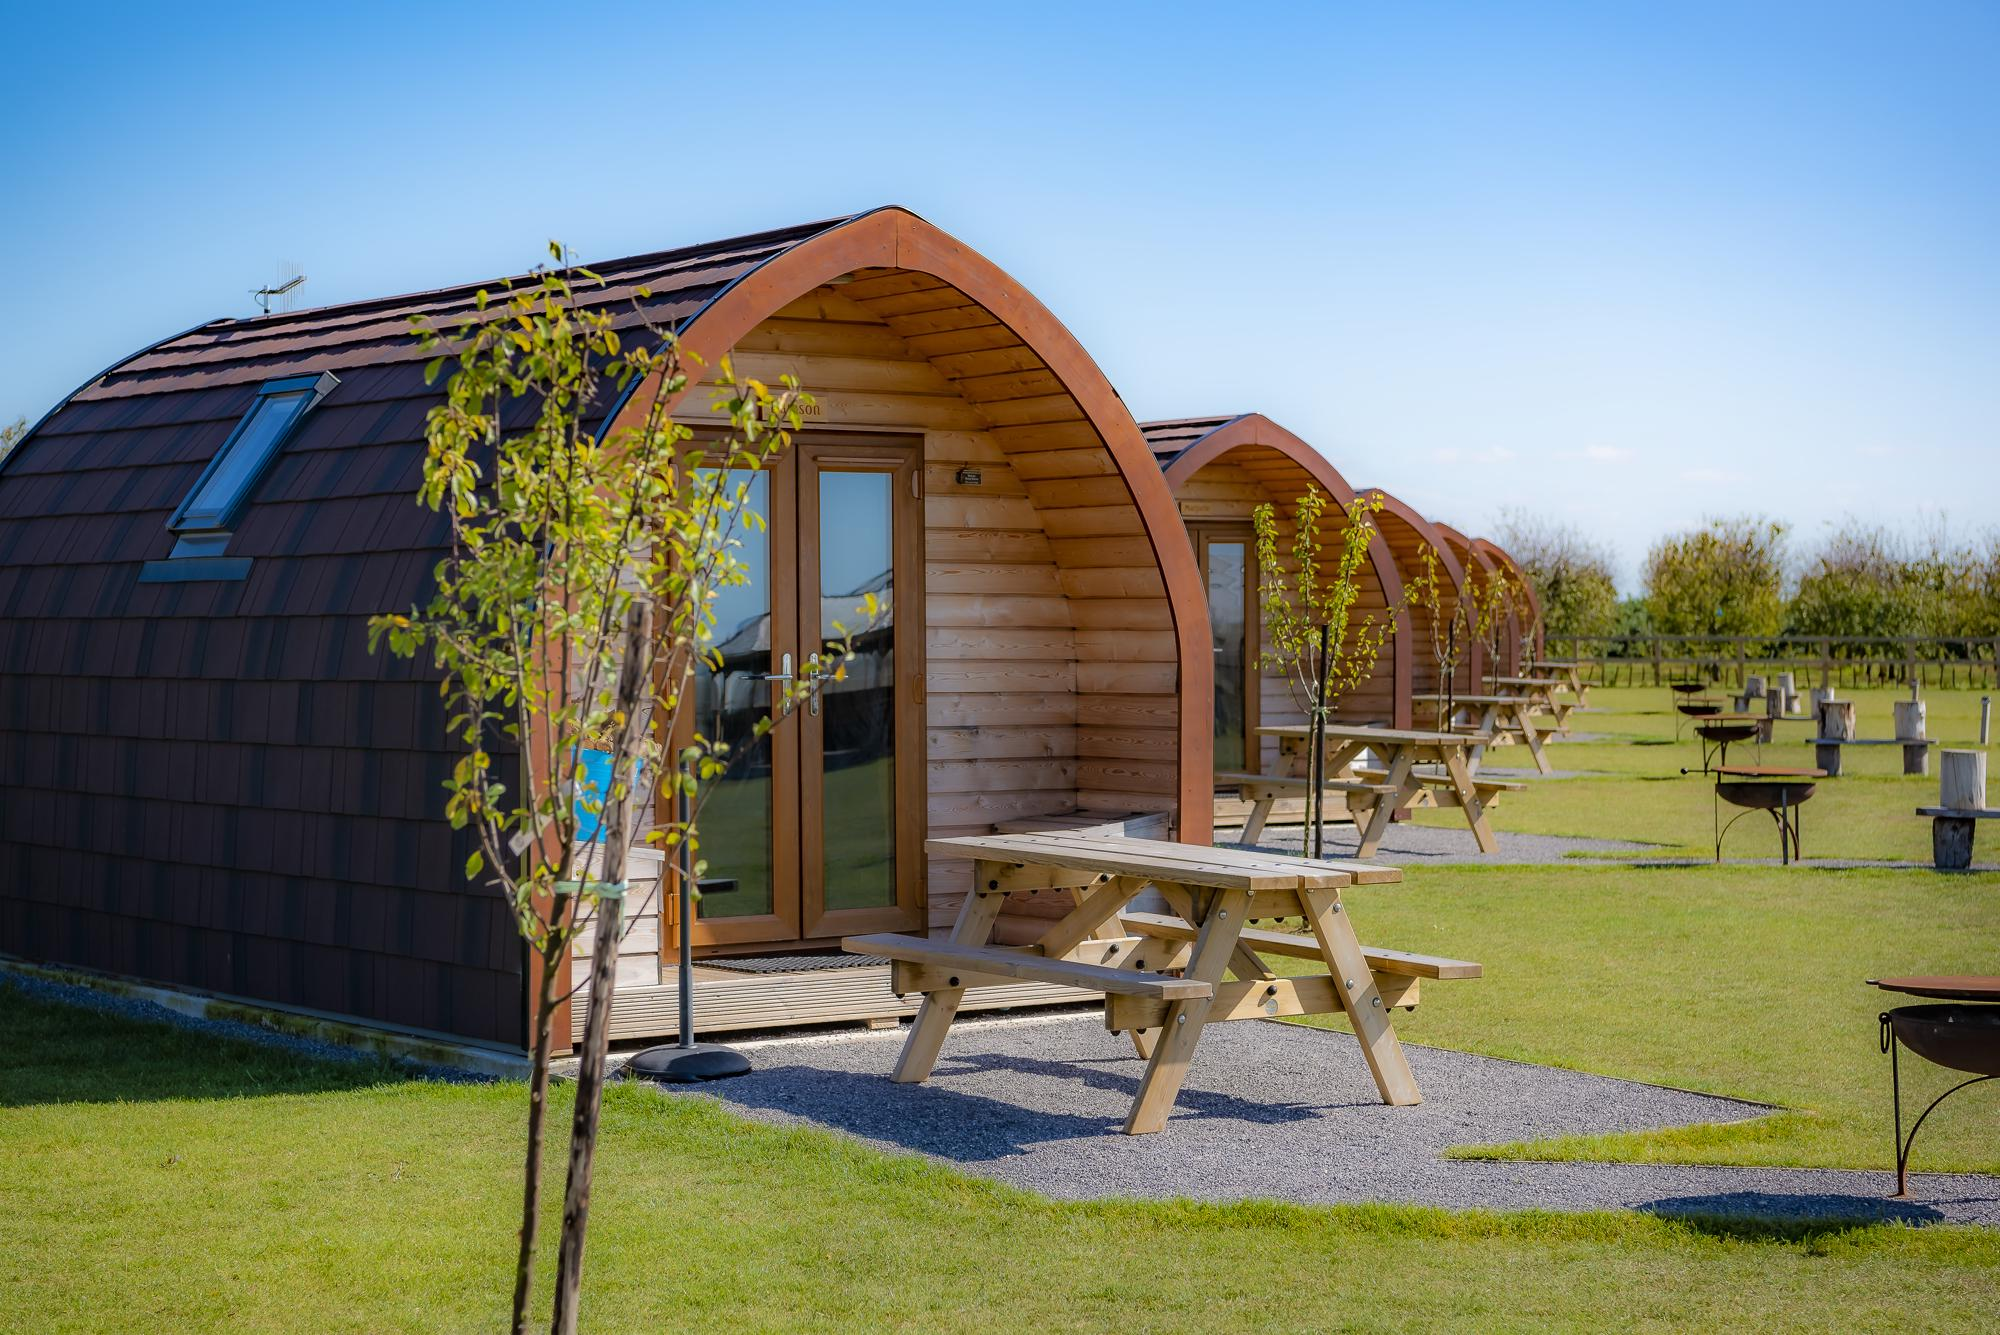 Campsites in Maidstone holidays at Glampingly